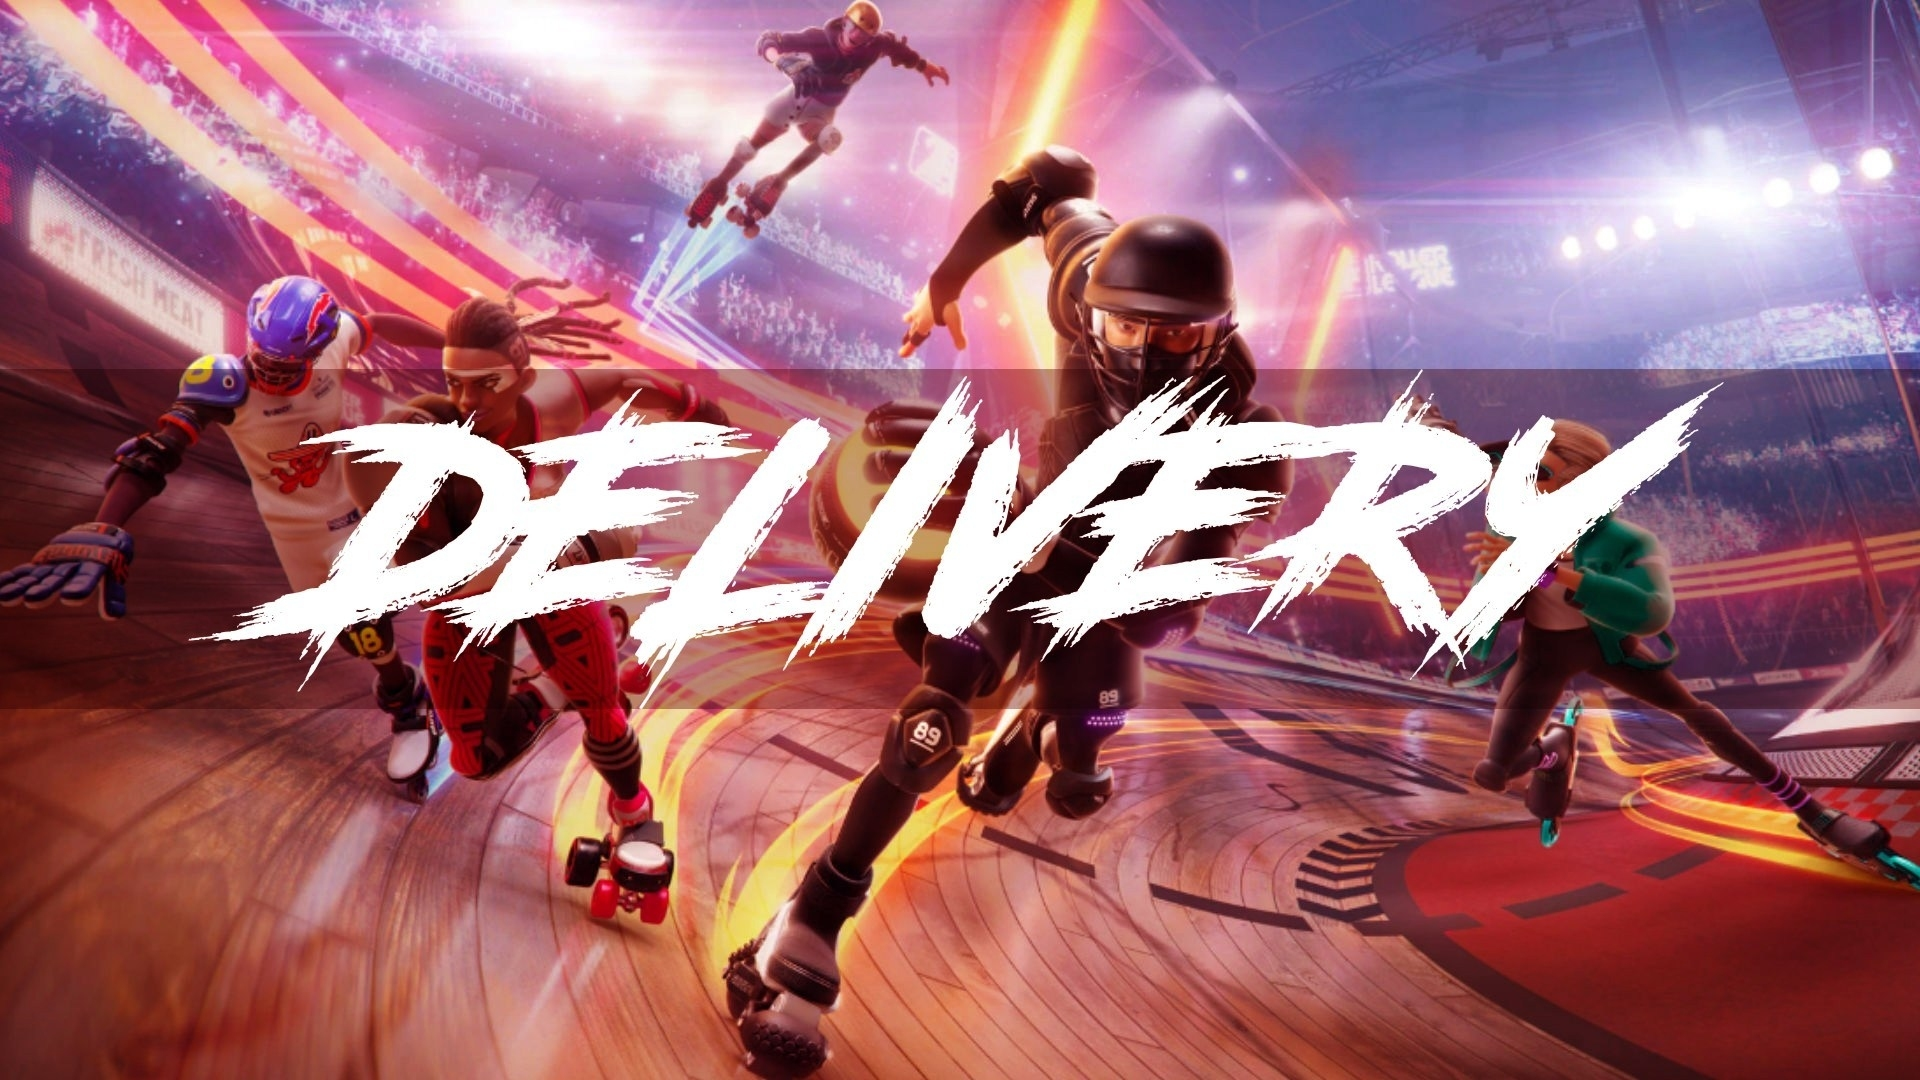 Roller Champions PS4 HD Wallpaper